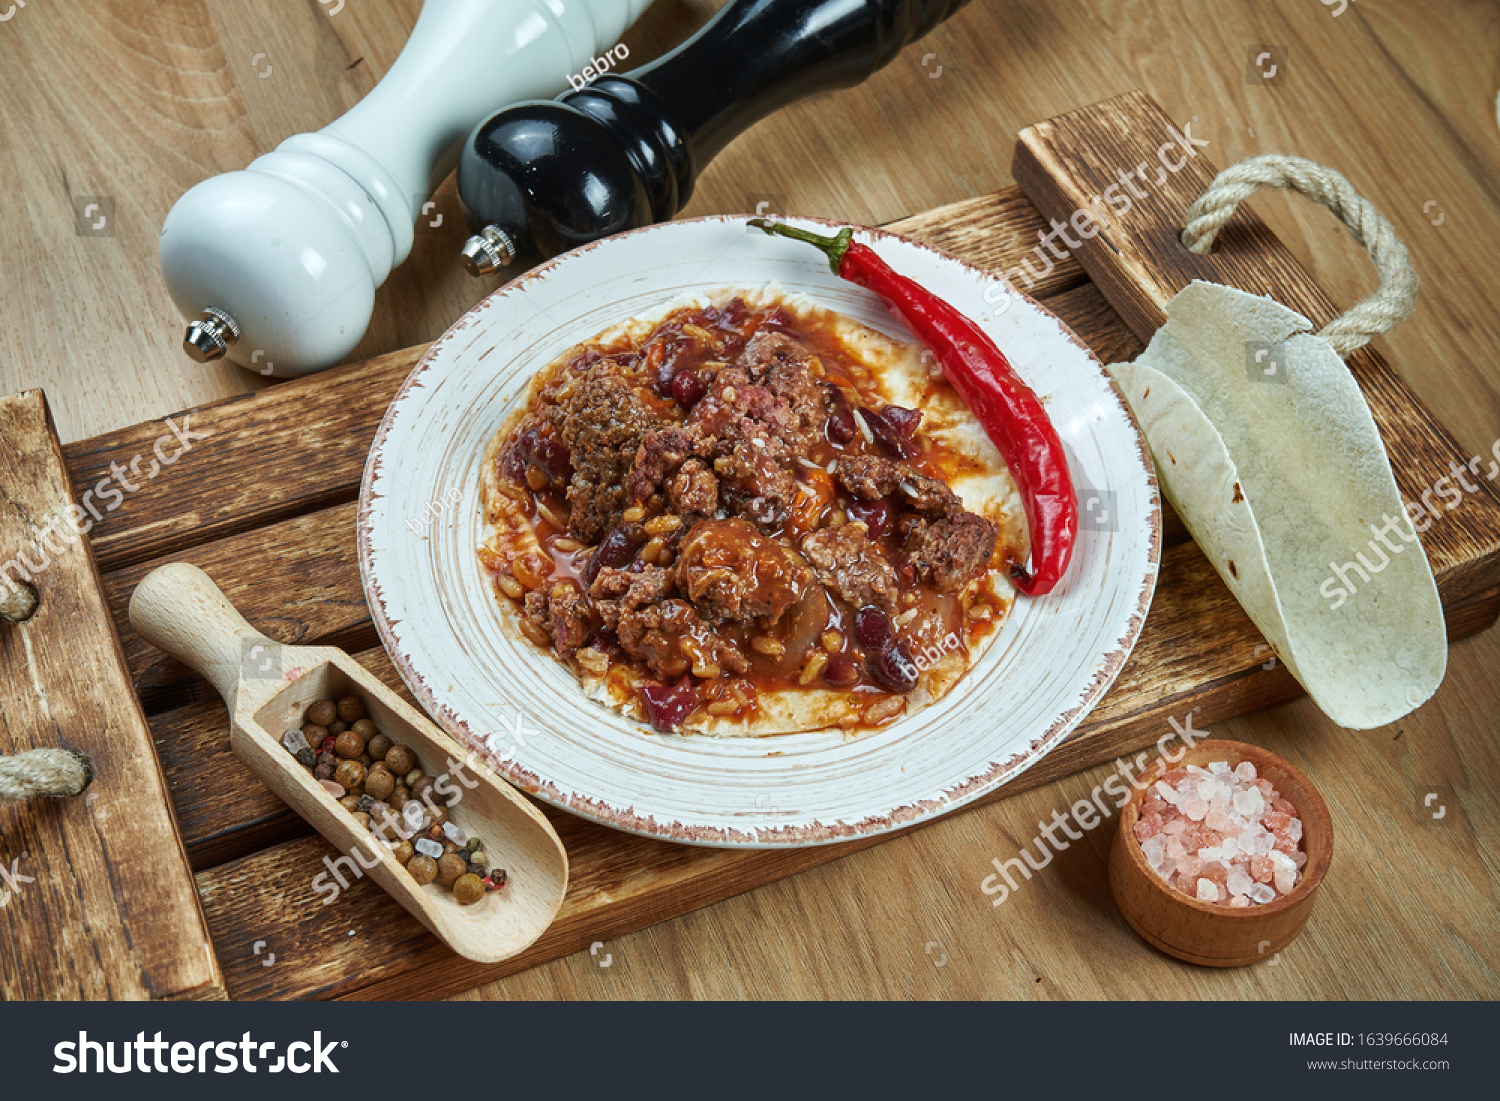 Traditional Mexican Tacos Beans Chili Peppers Stock Photo Edit Now 1639666084